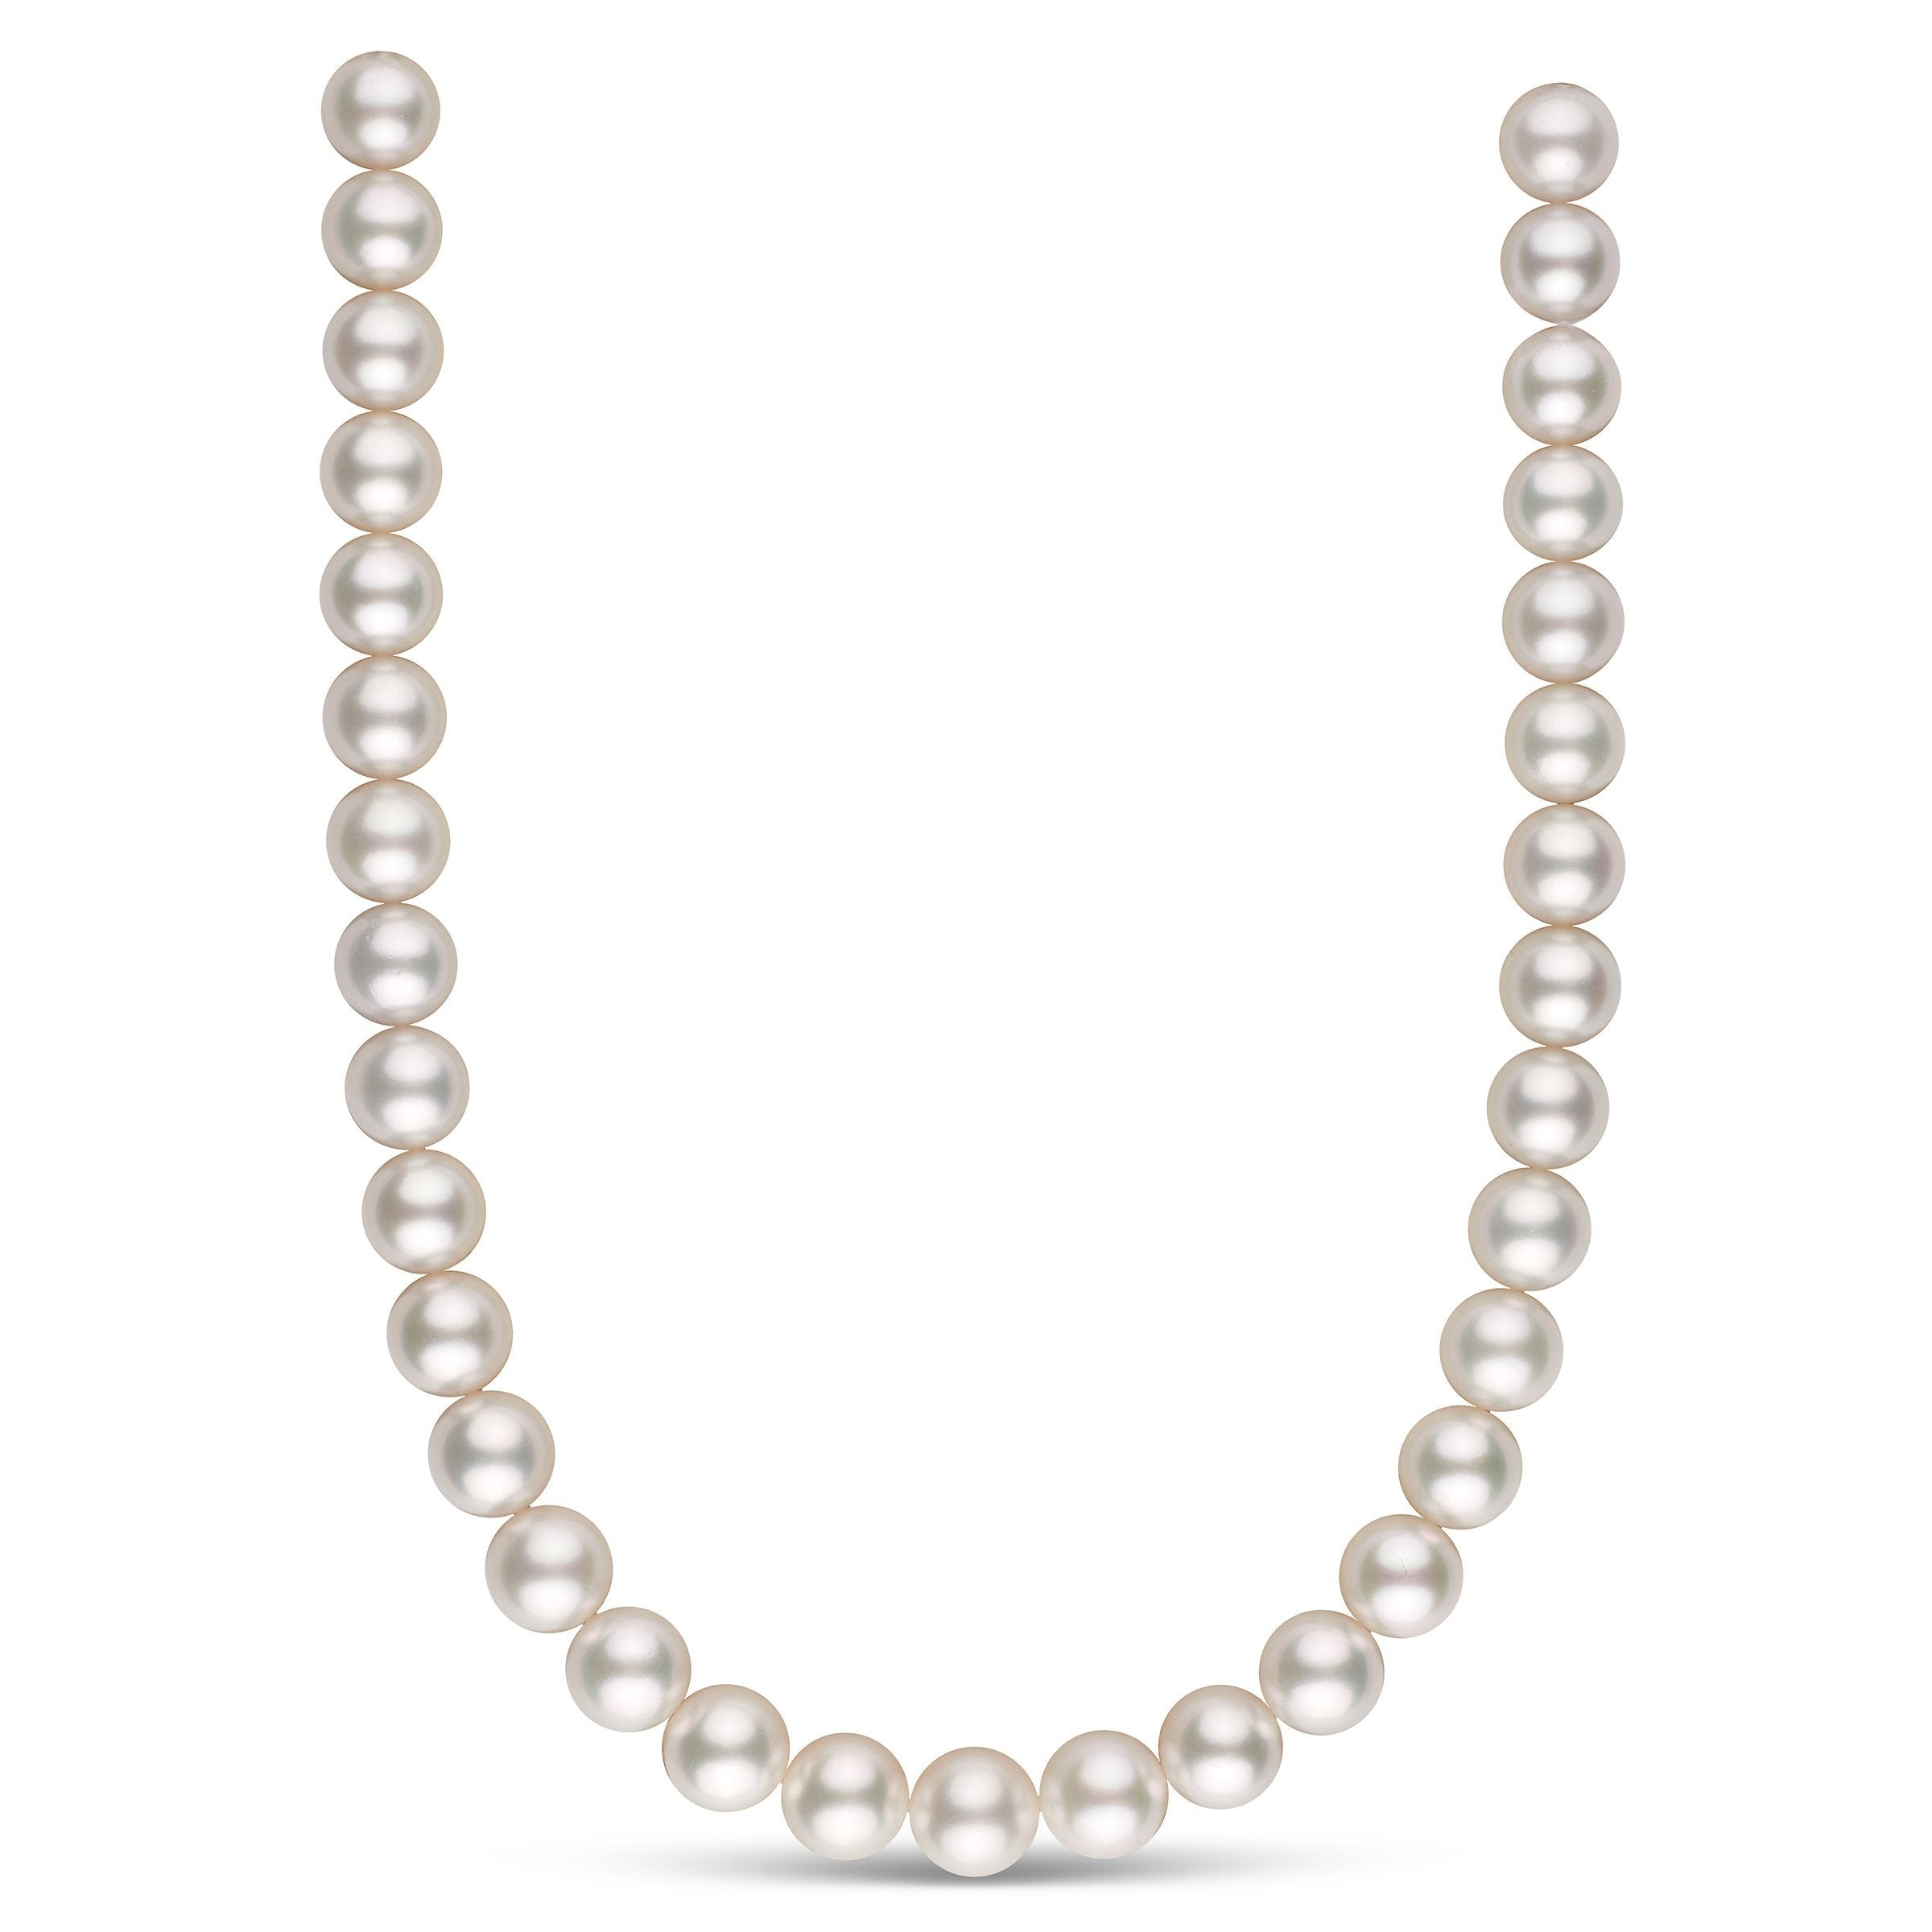 The Mozart White South Sea Pearl Necklace